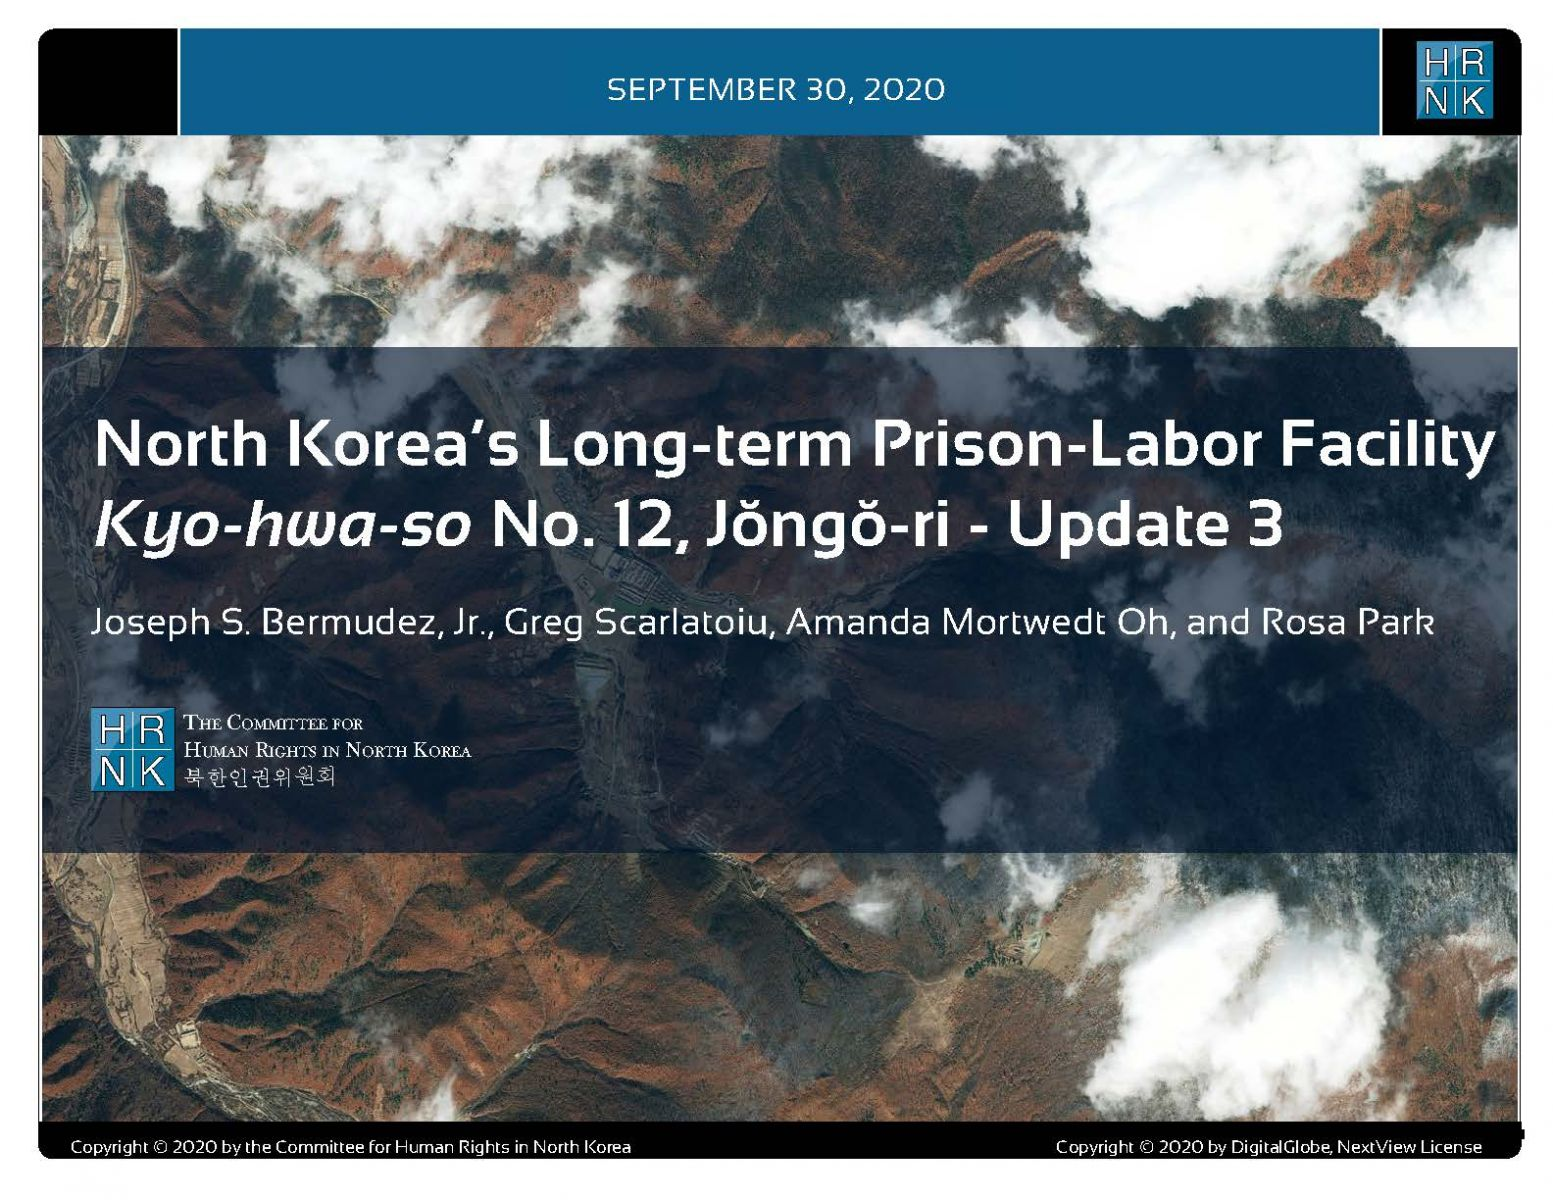 North Korea's Long-term Prison-Labor Facility Kyo-hwa-so No. 12, Jŏngŏ-ri - Update 3